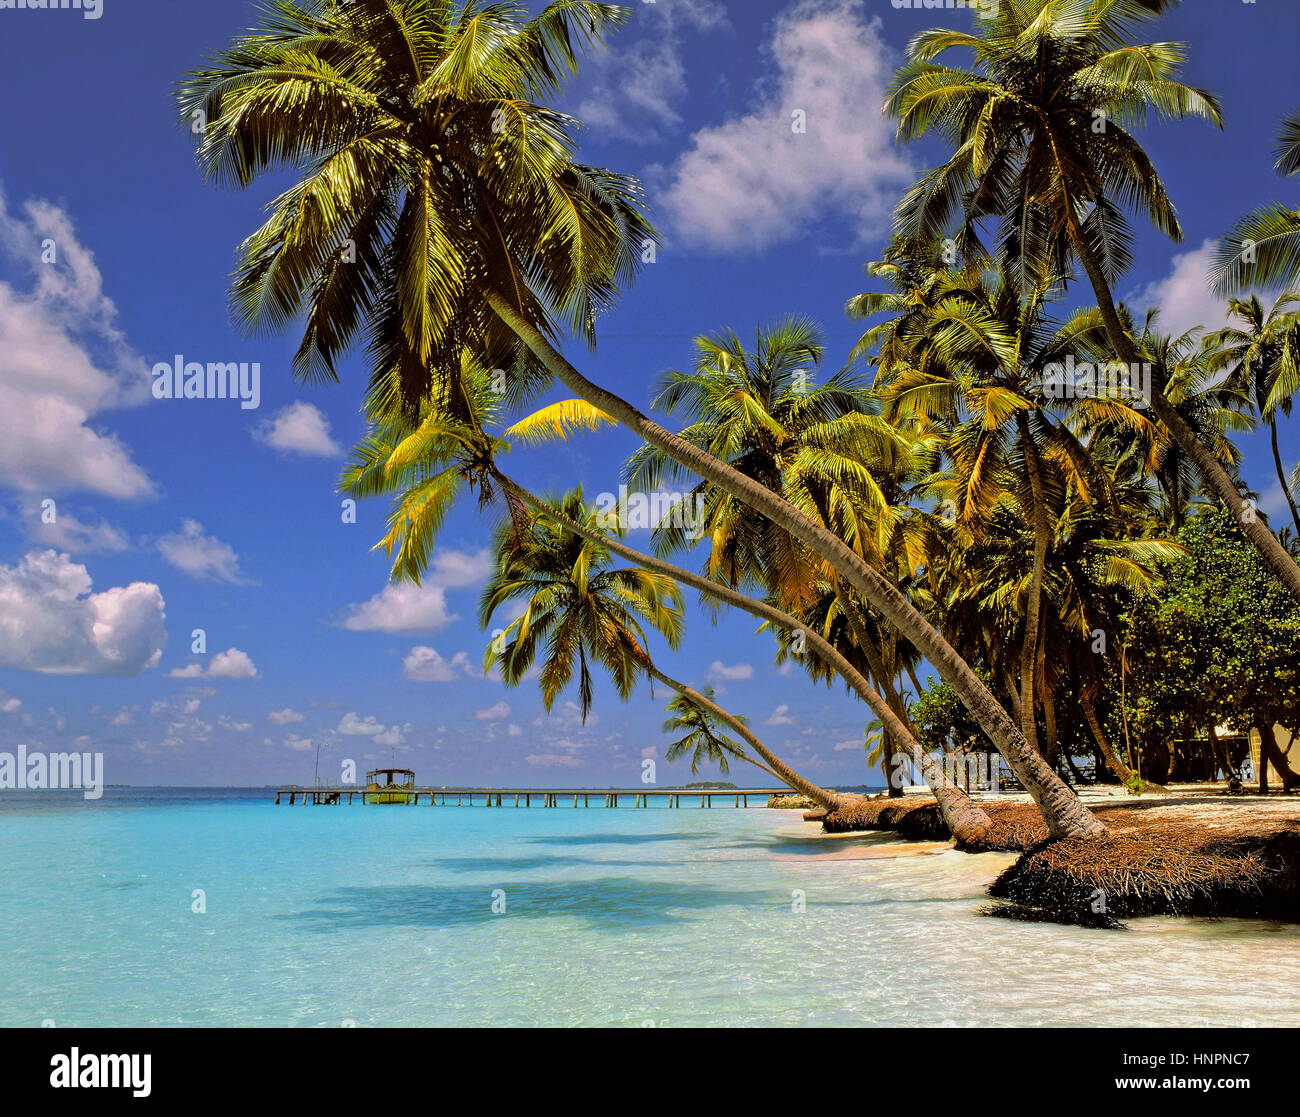 Kuda Bandos Island, North Male Atoll, Maldives, Maldive Republic, Indian Ocean Atoll - Stock Image